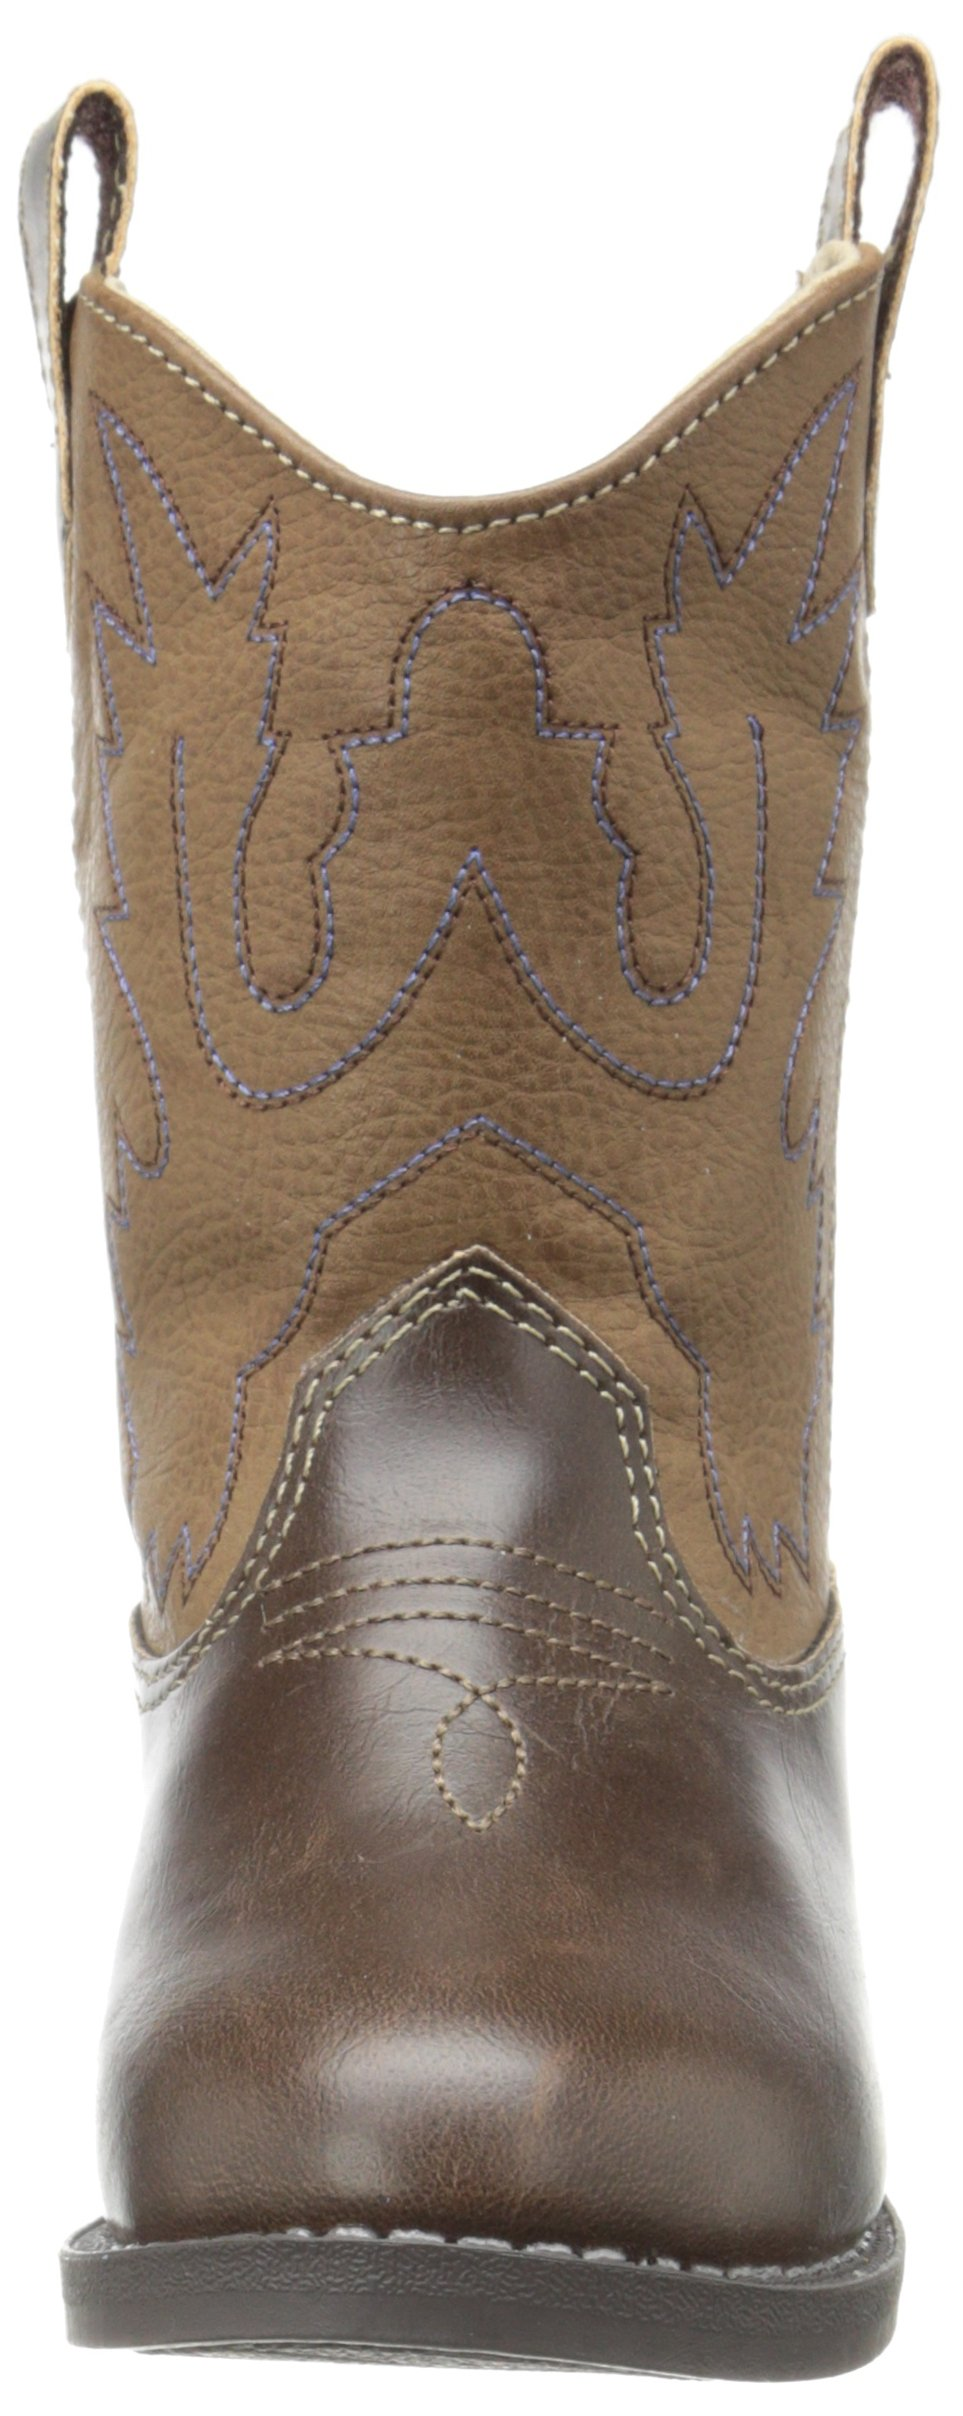 Baby Deer Western Boot (Little Kid), Brown, 11 M US Little Kid by Baby Deer (Image #4)